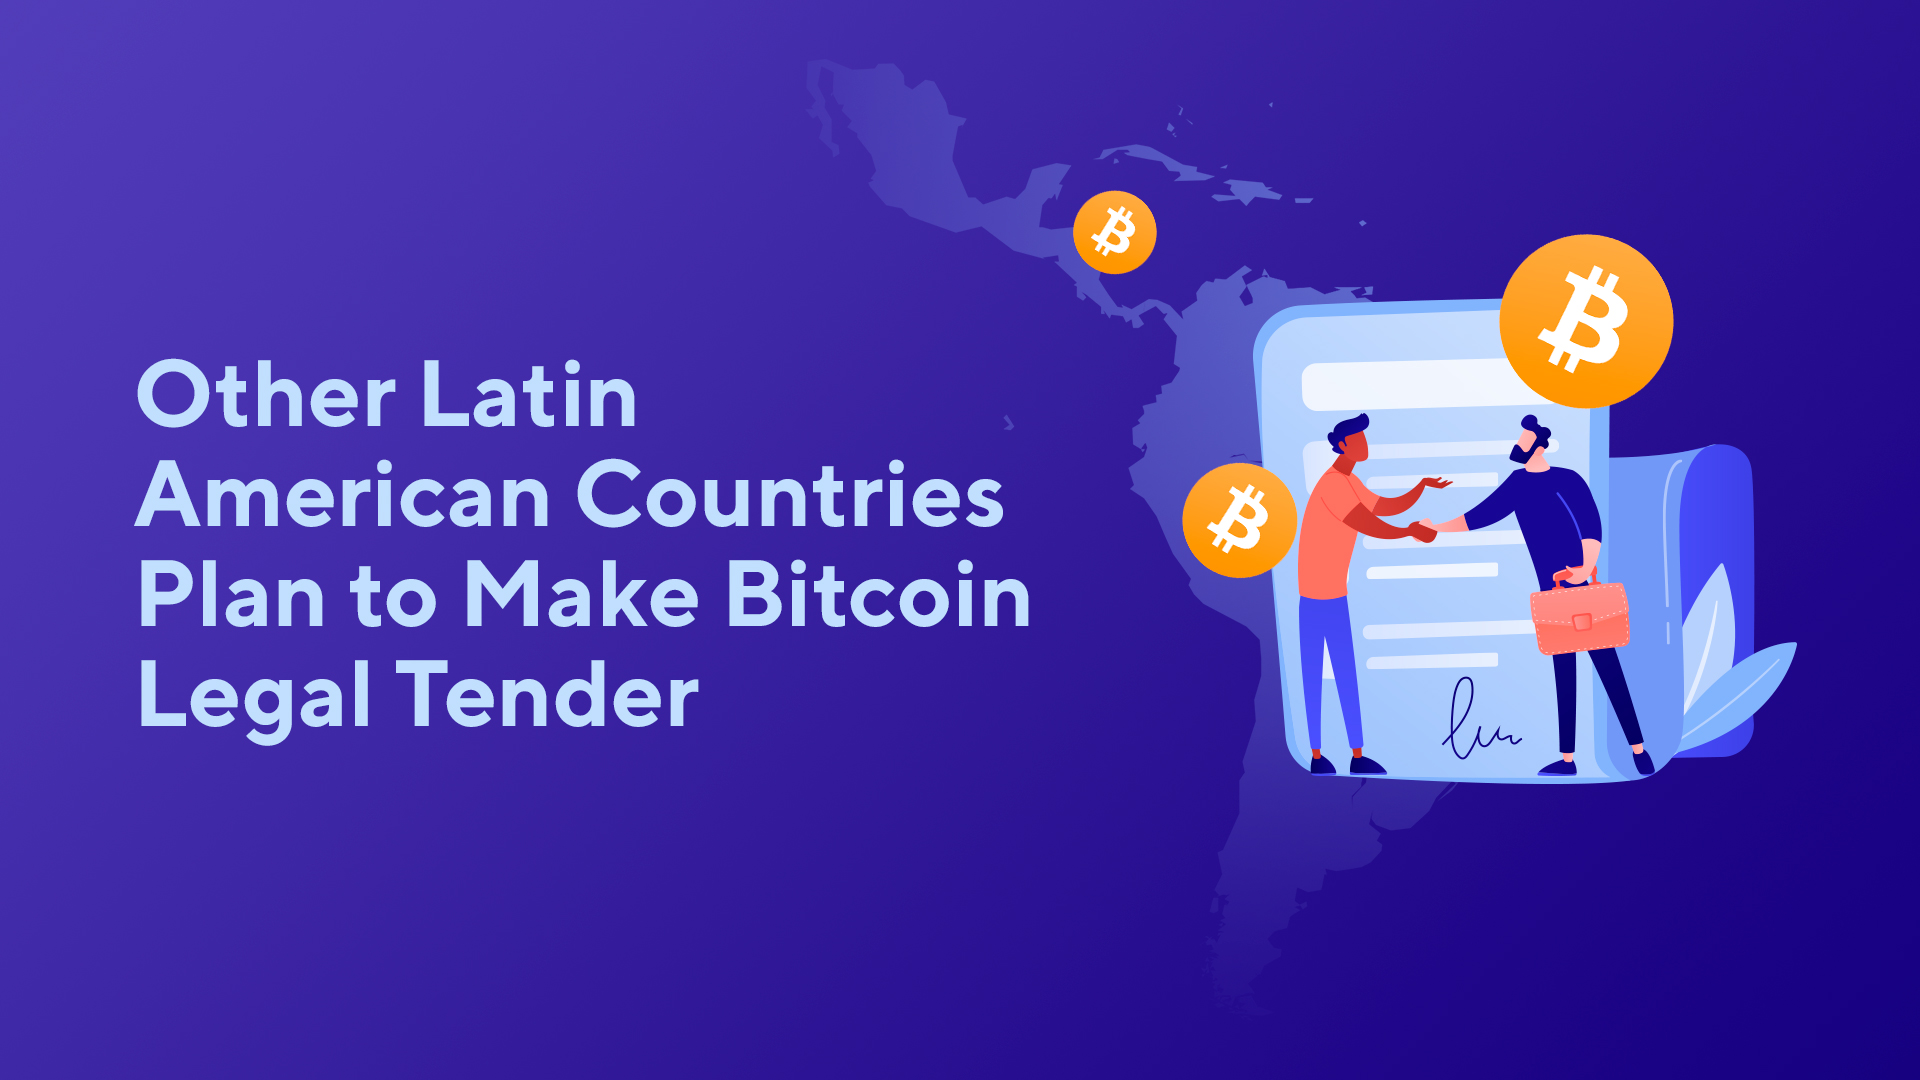 Other Latin American Countries Plan to Make Bitcoin Legal Tender